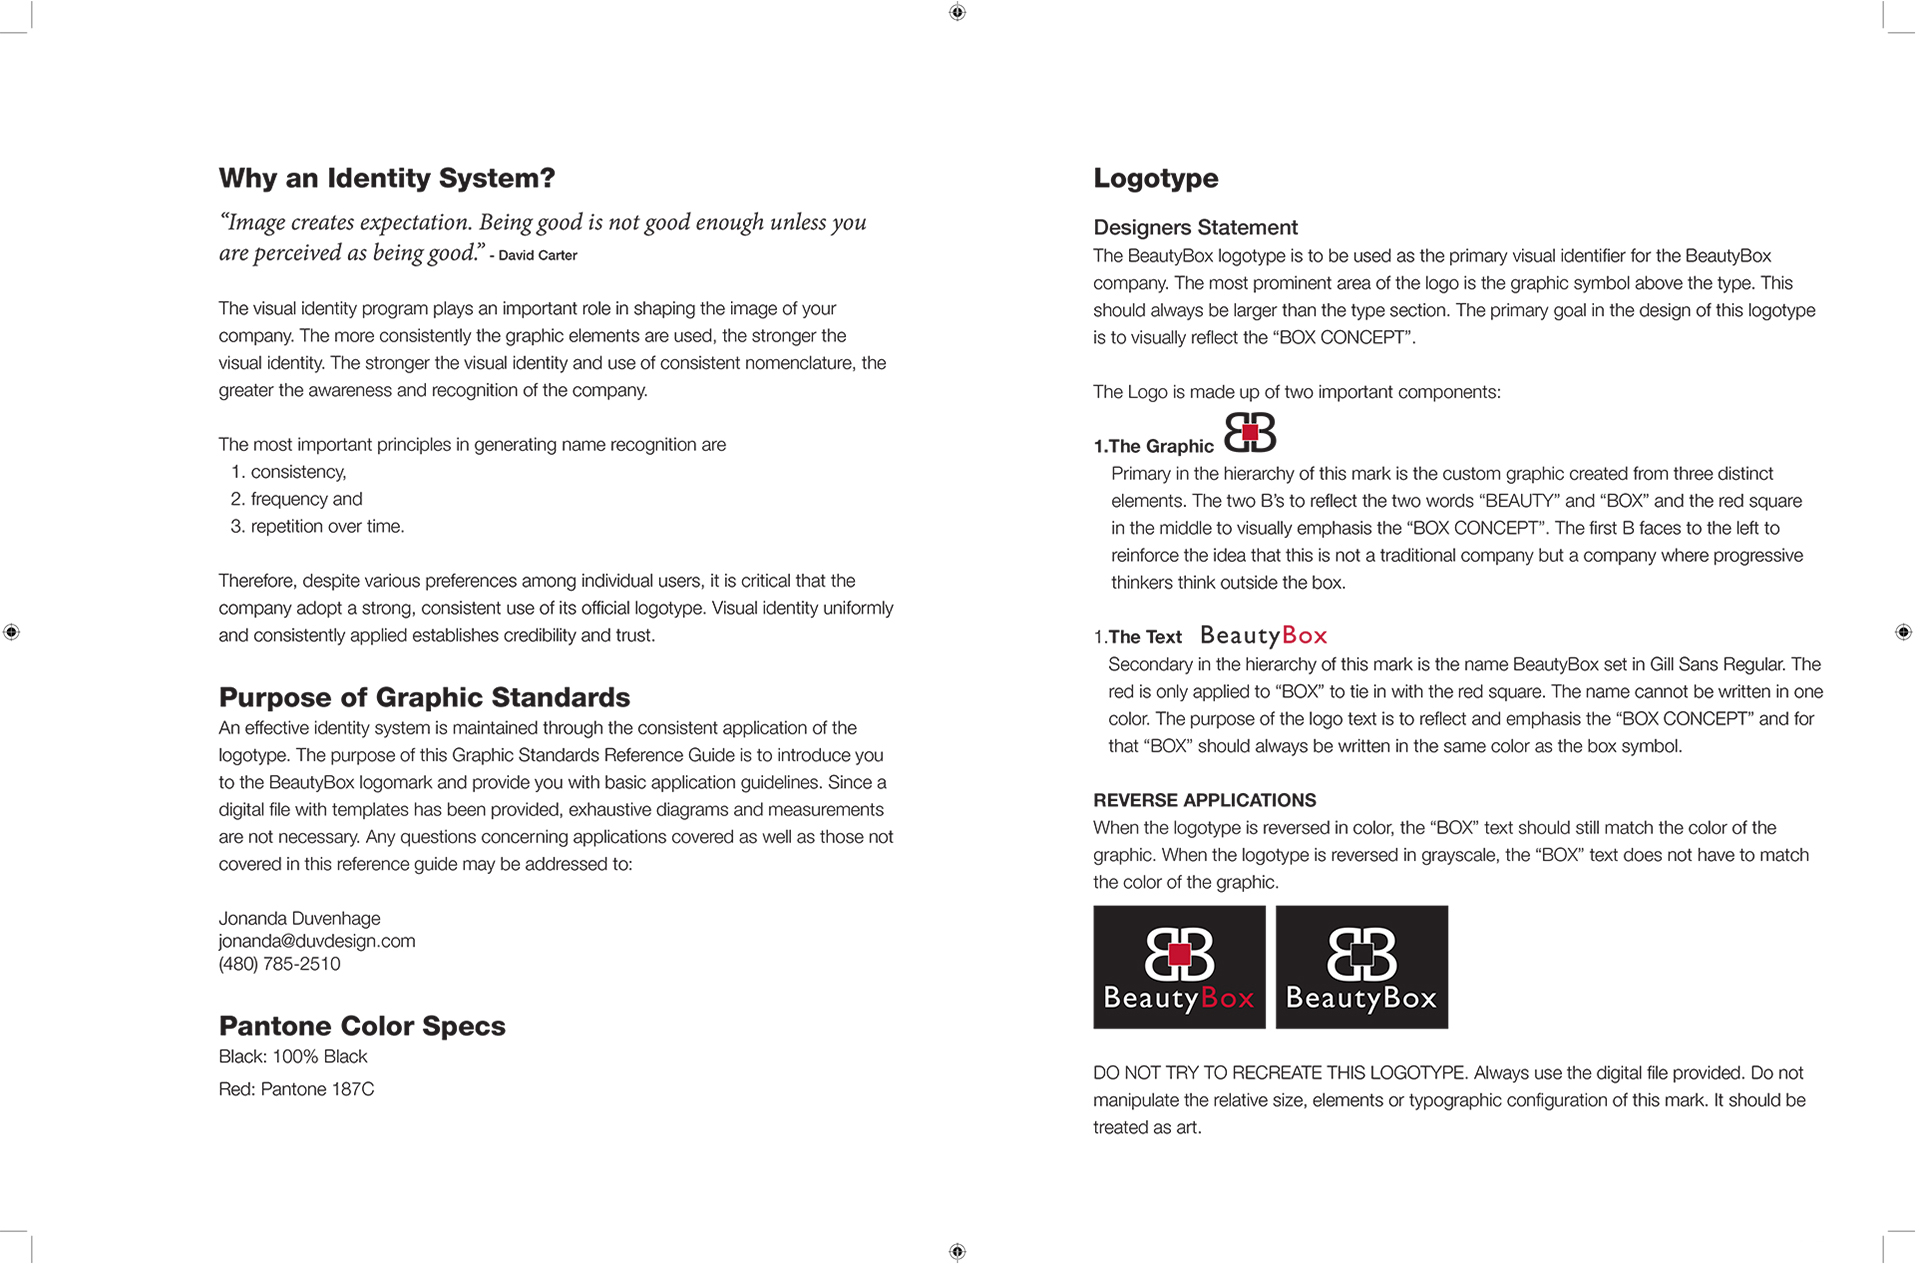 Beauty Box Corporate Identity Standards Manual